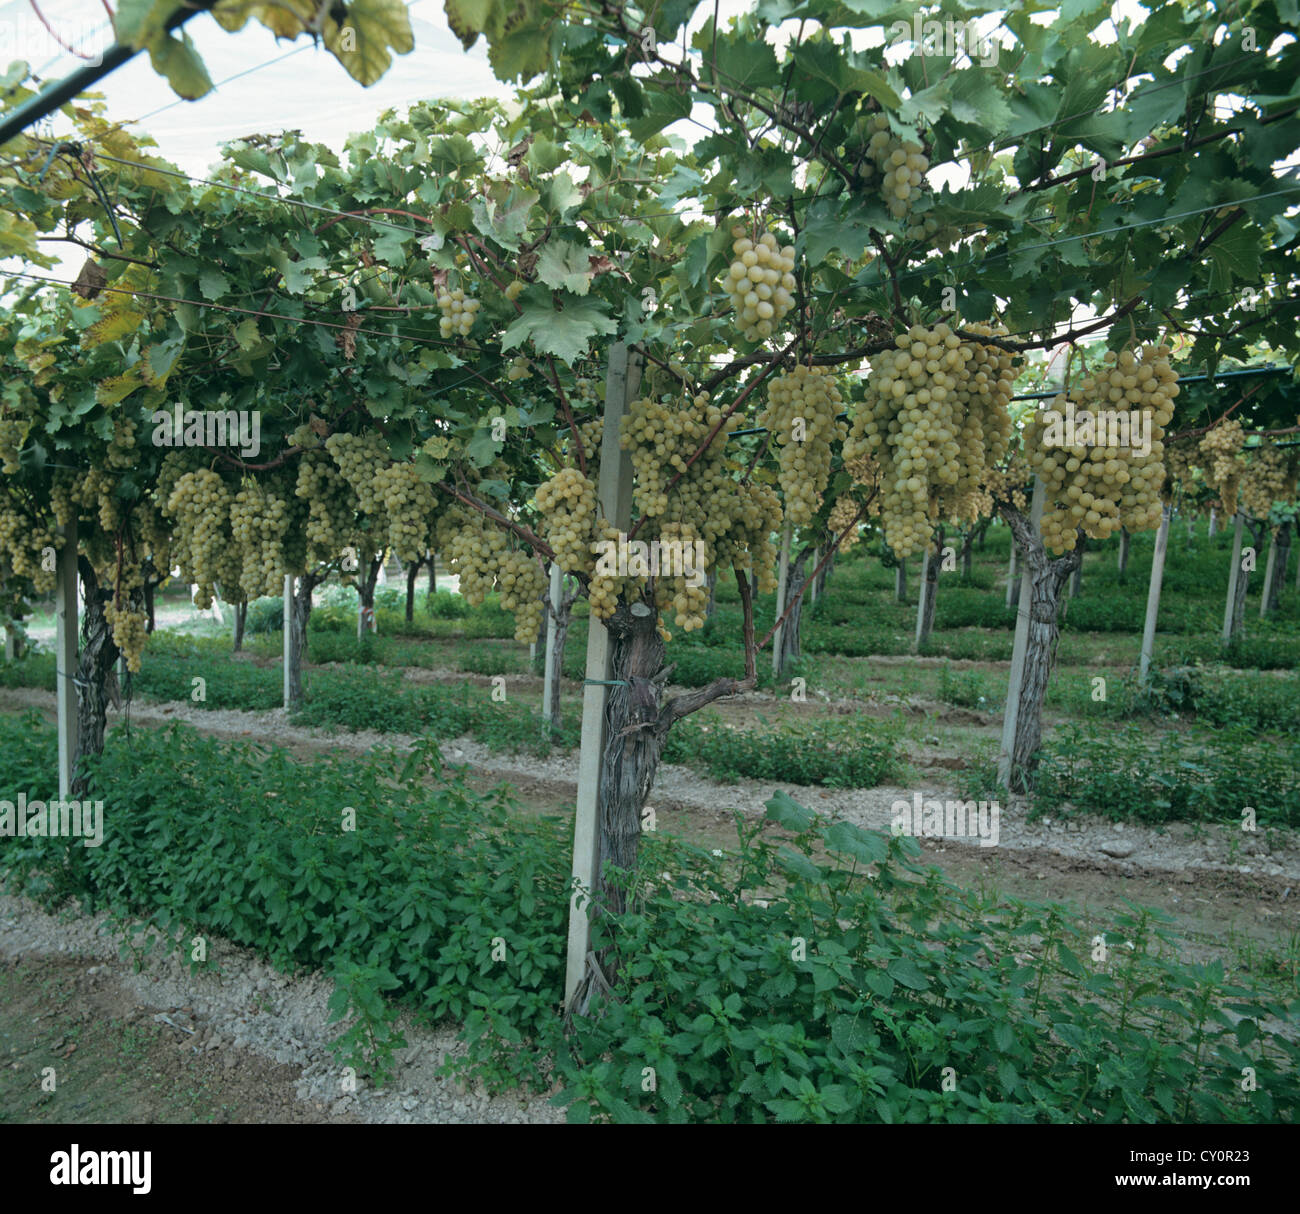 Table grapes trellised under polythene in Sicily - Stock Image